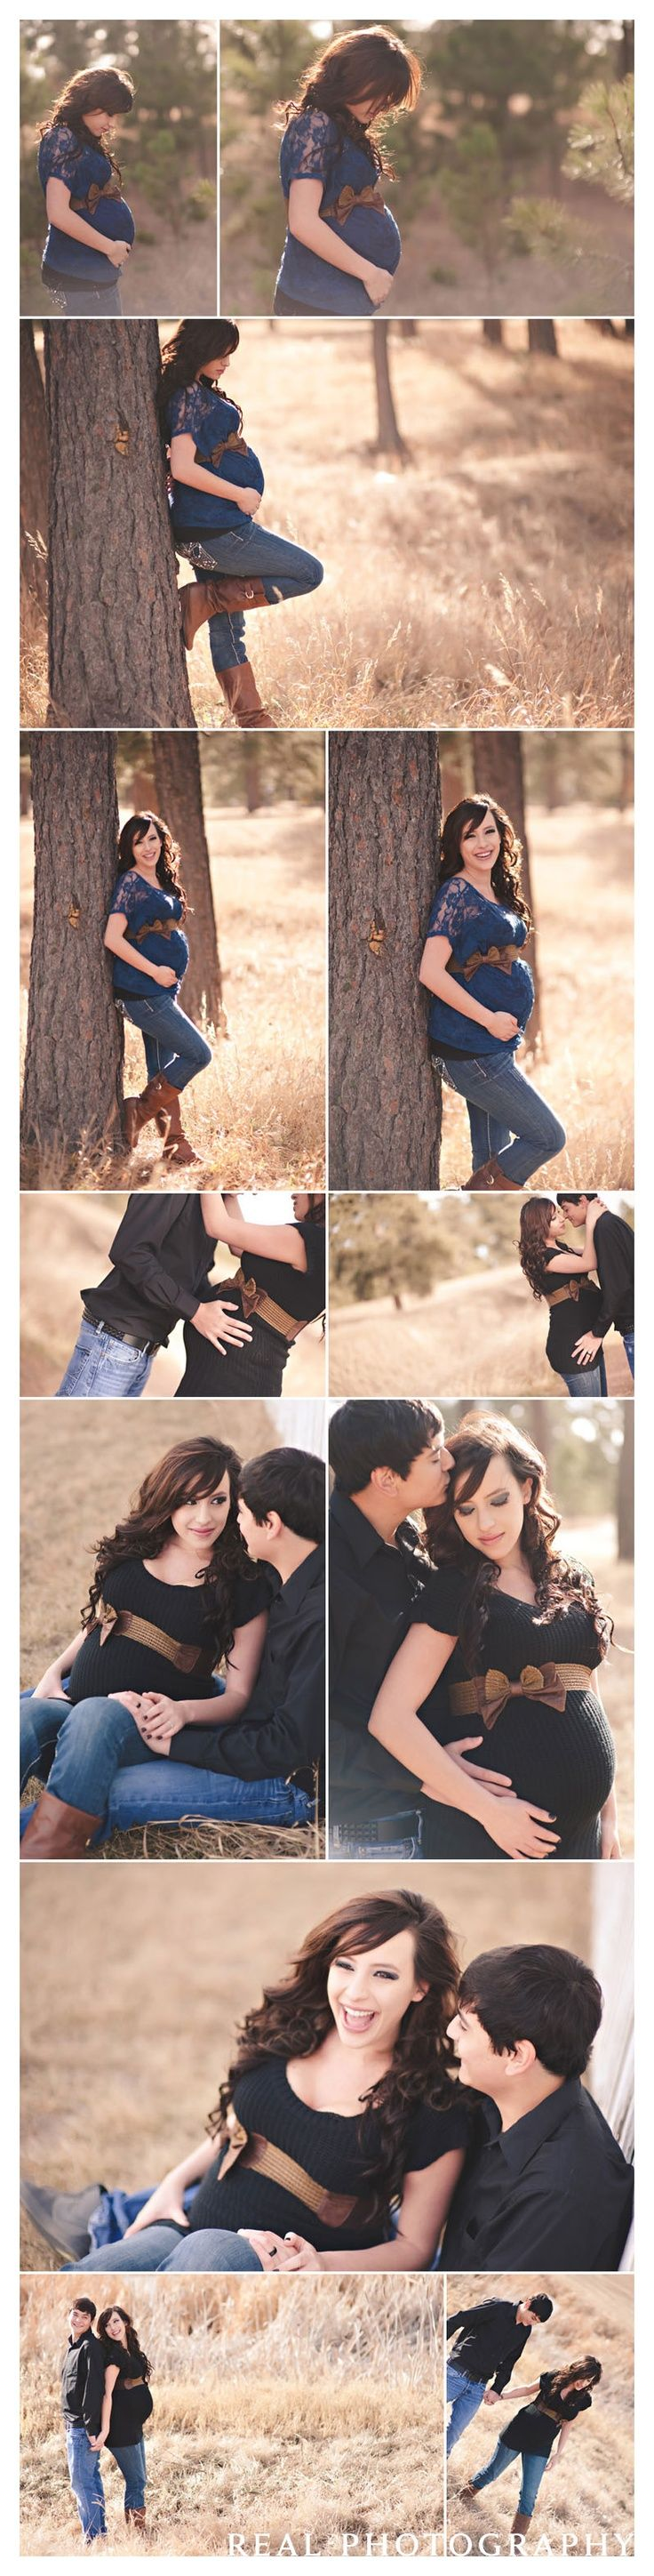 maternity photo shoot ideas | Maternity photo shoot clothing ideas love this ... | Baby Bump {Ins...